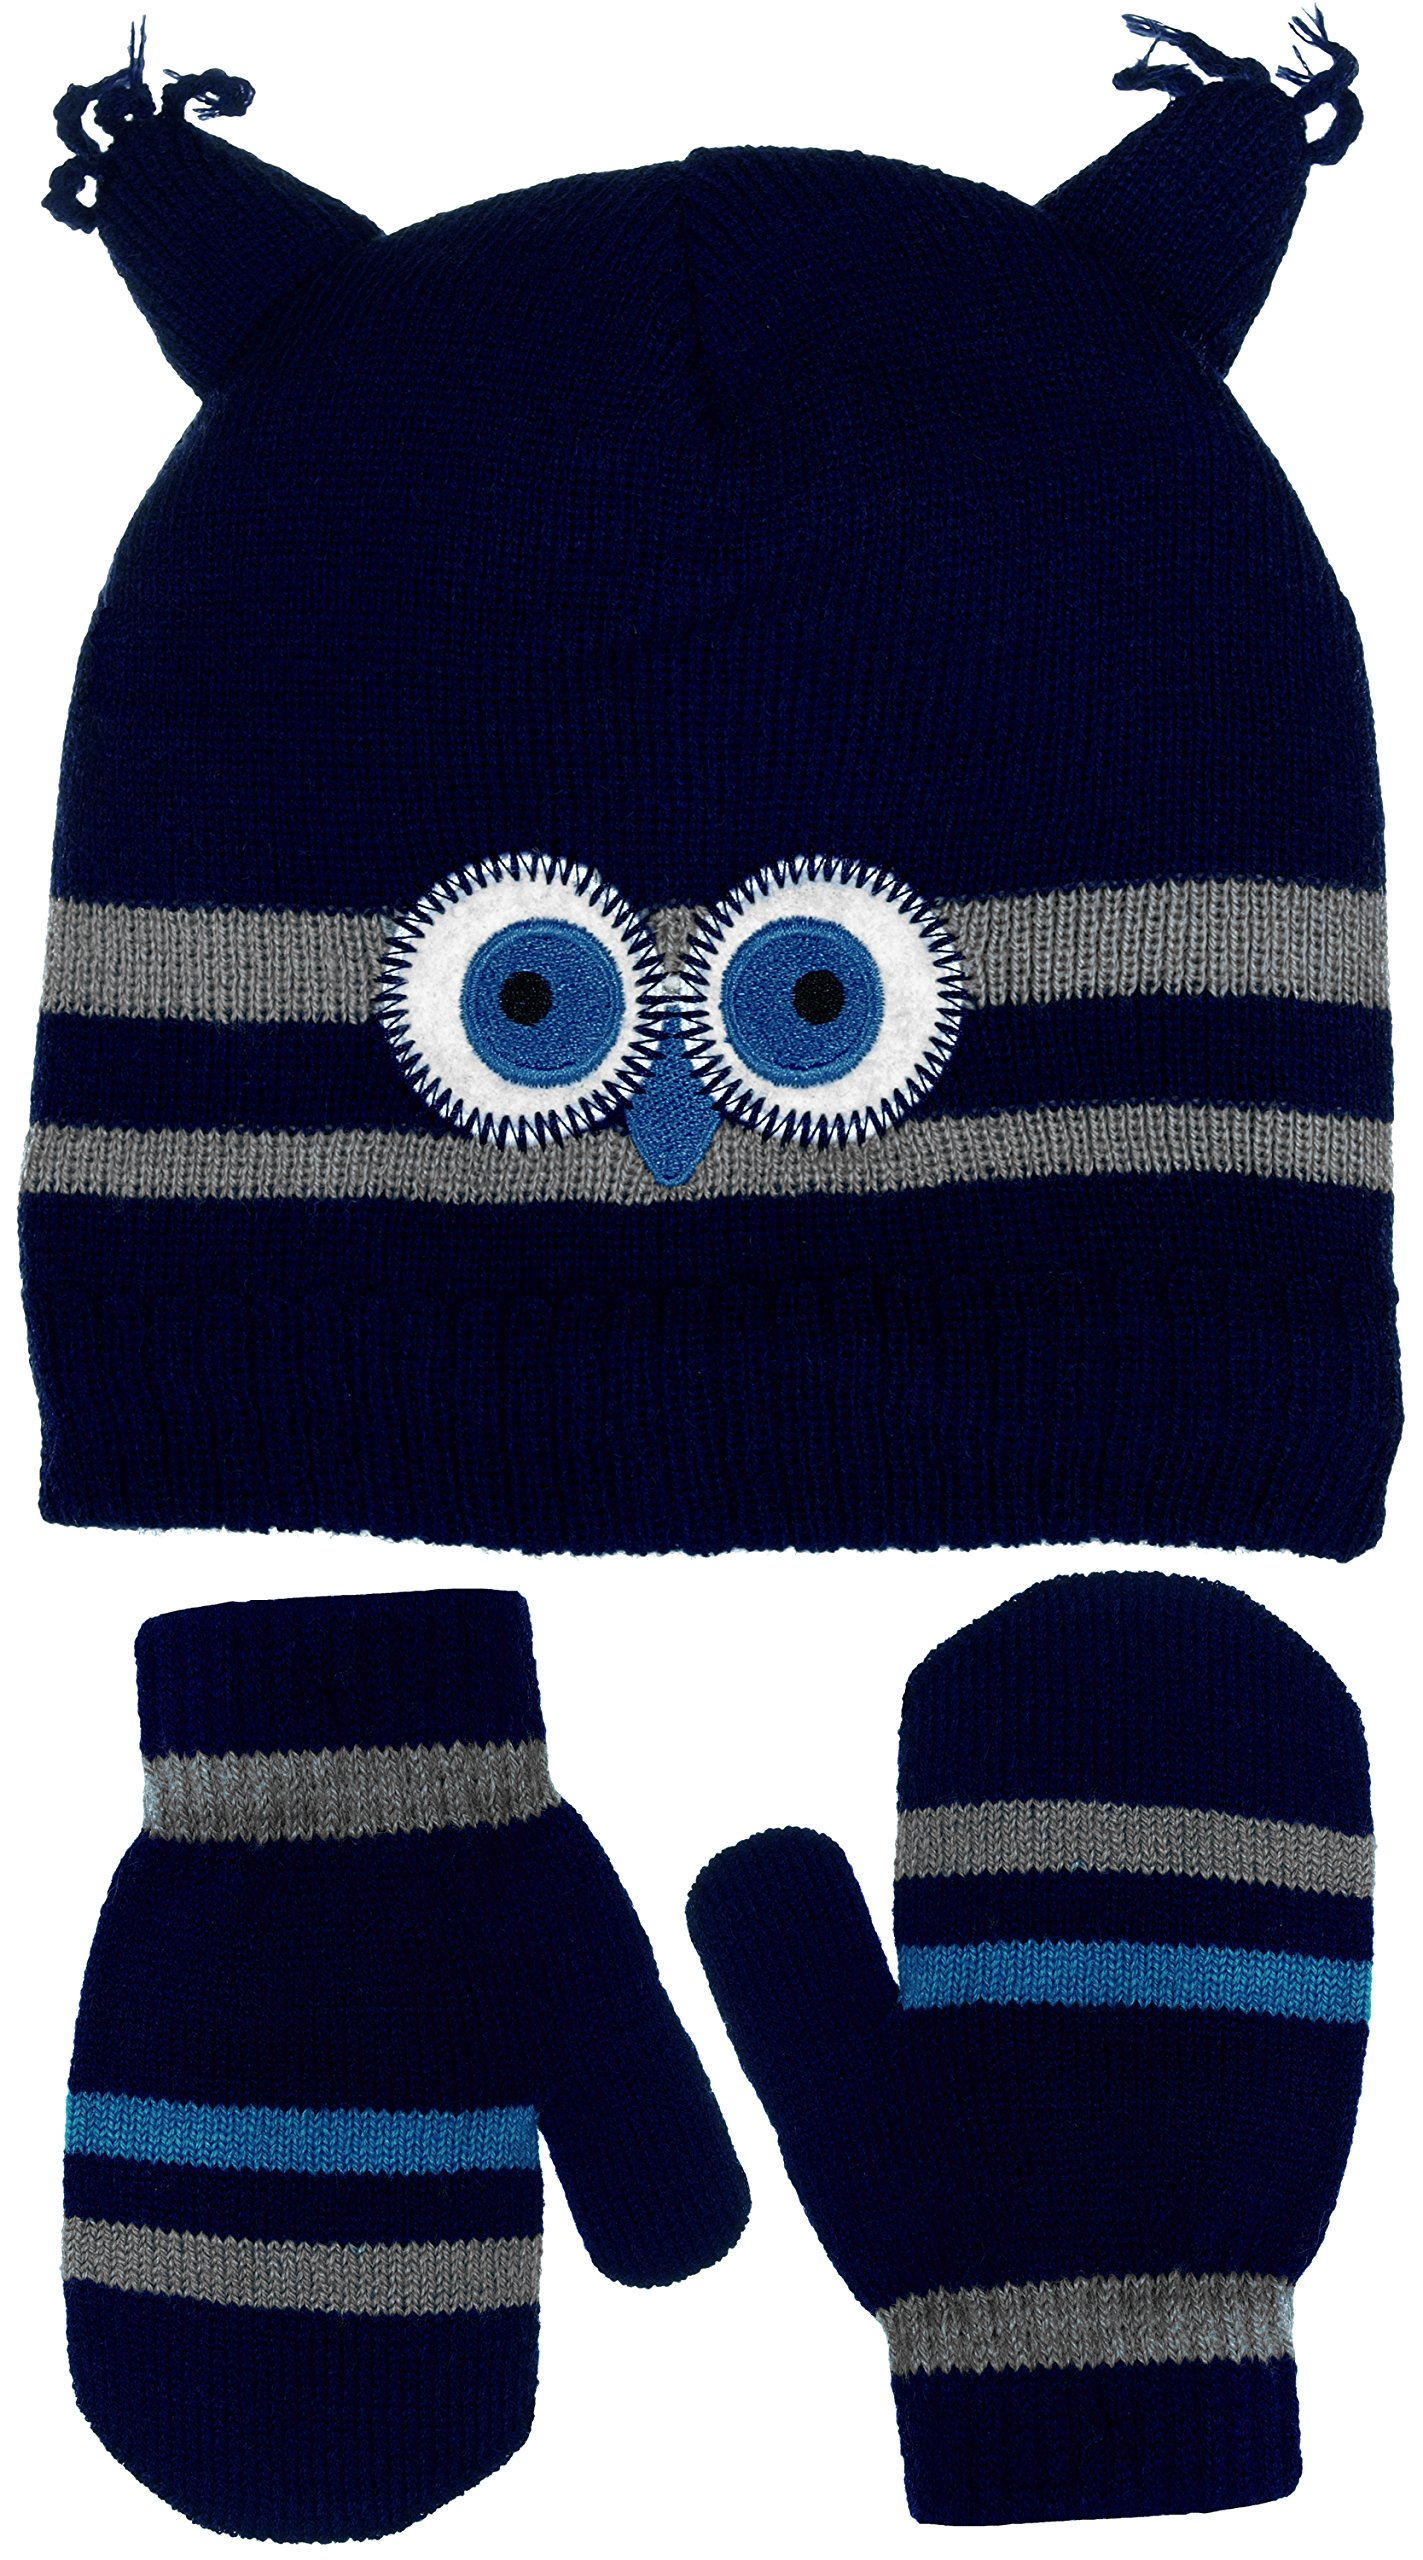 Little Boys Wise Guy Owl Knit Beanie & Mittens Set in Light Blue or Navy Blue (Navy Blue)